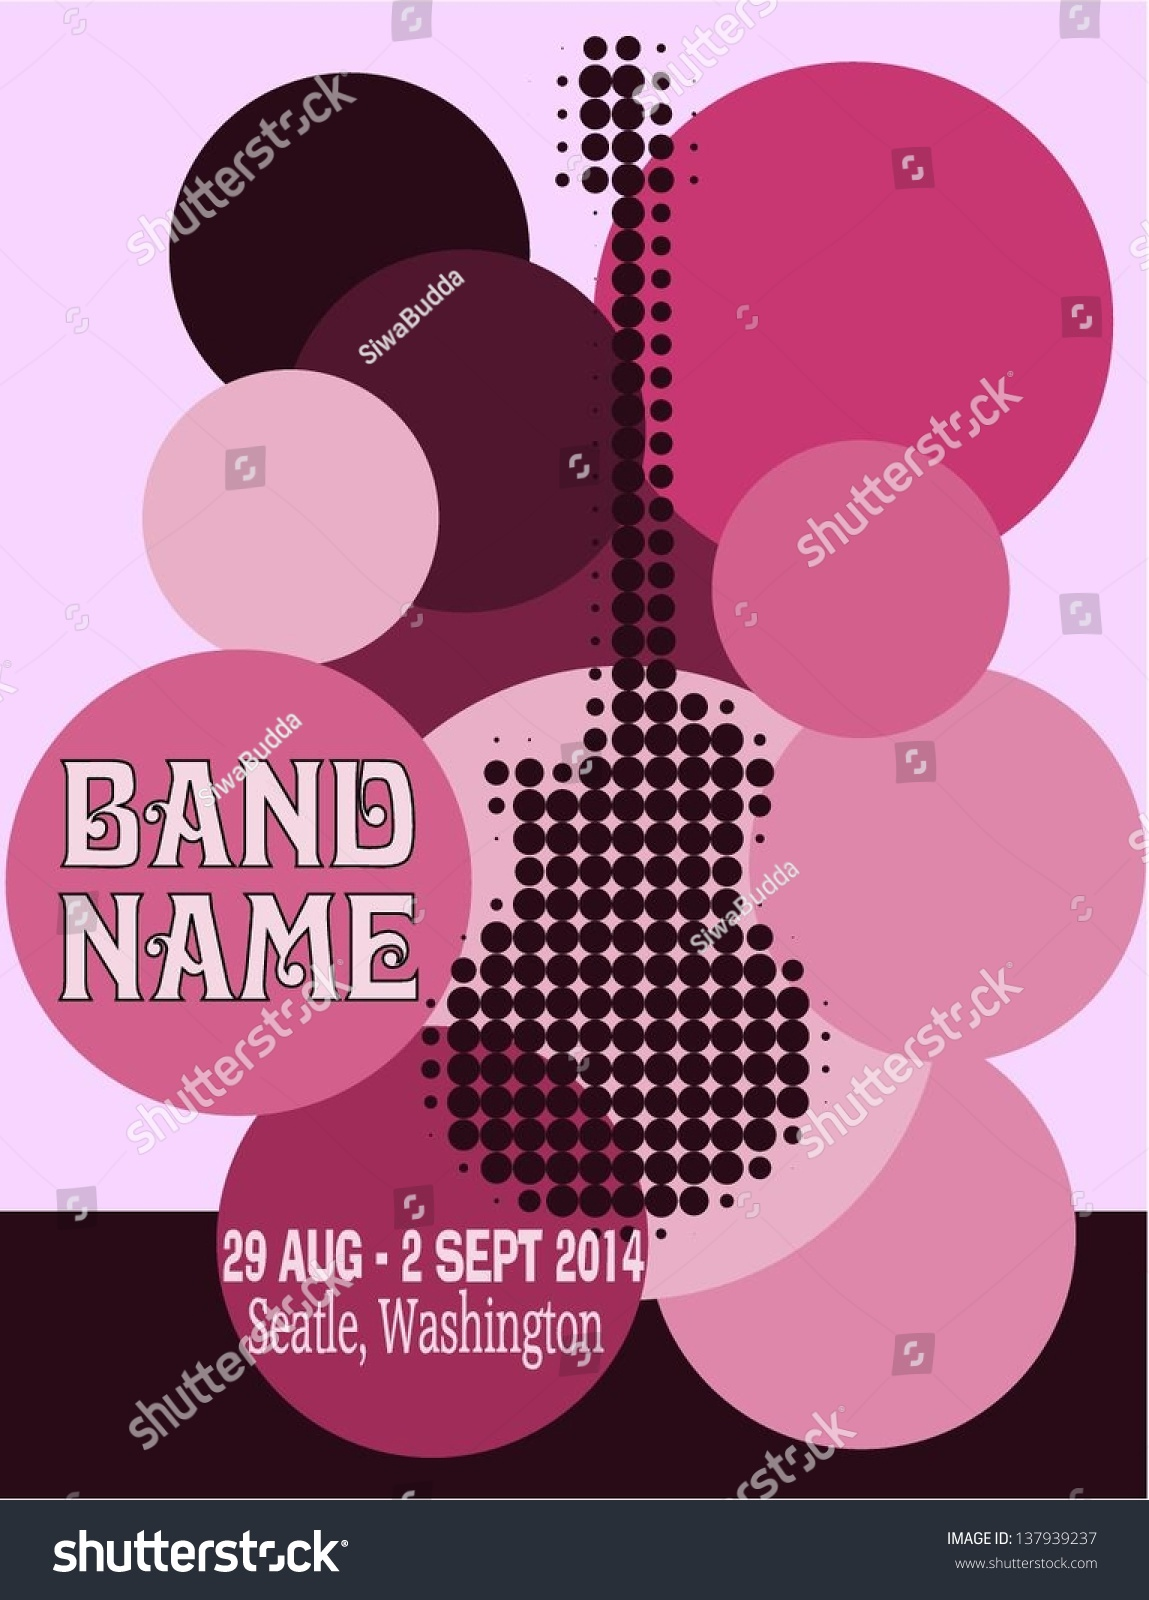 Vector Festival Poster Template With Guitar - 137939237 : Shutterstock